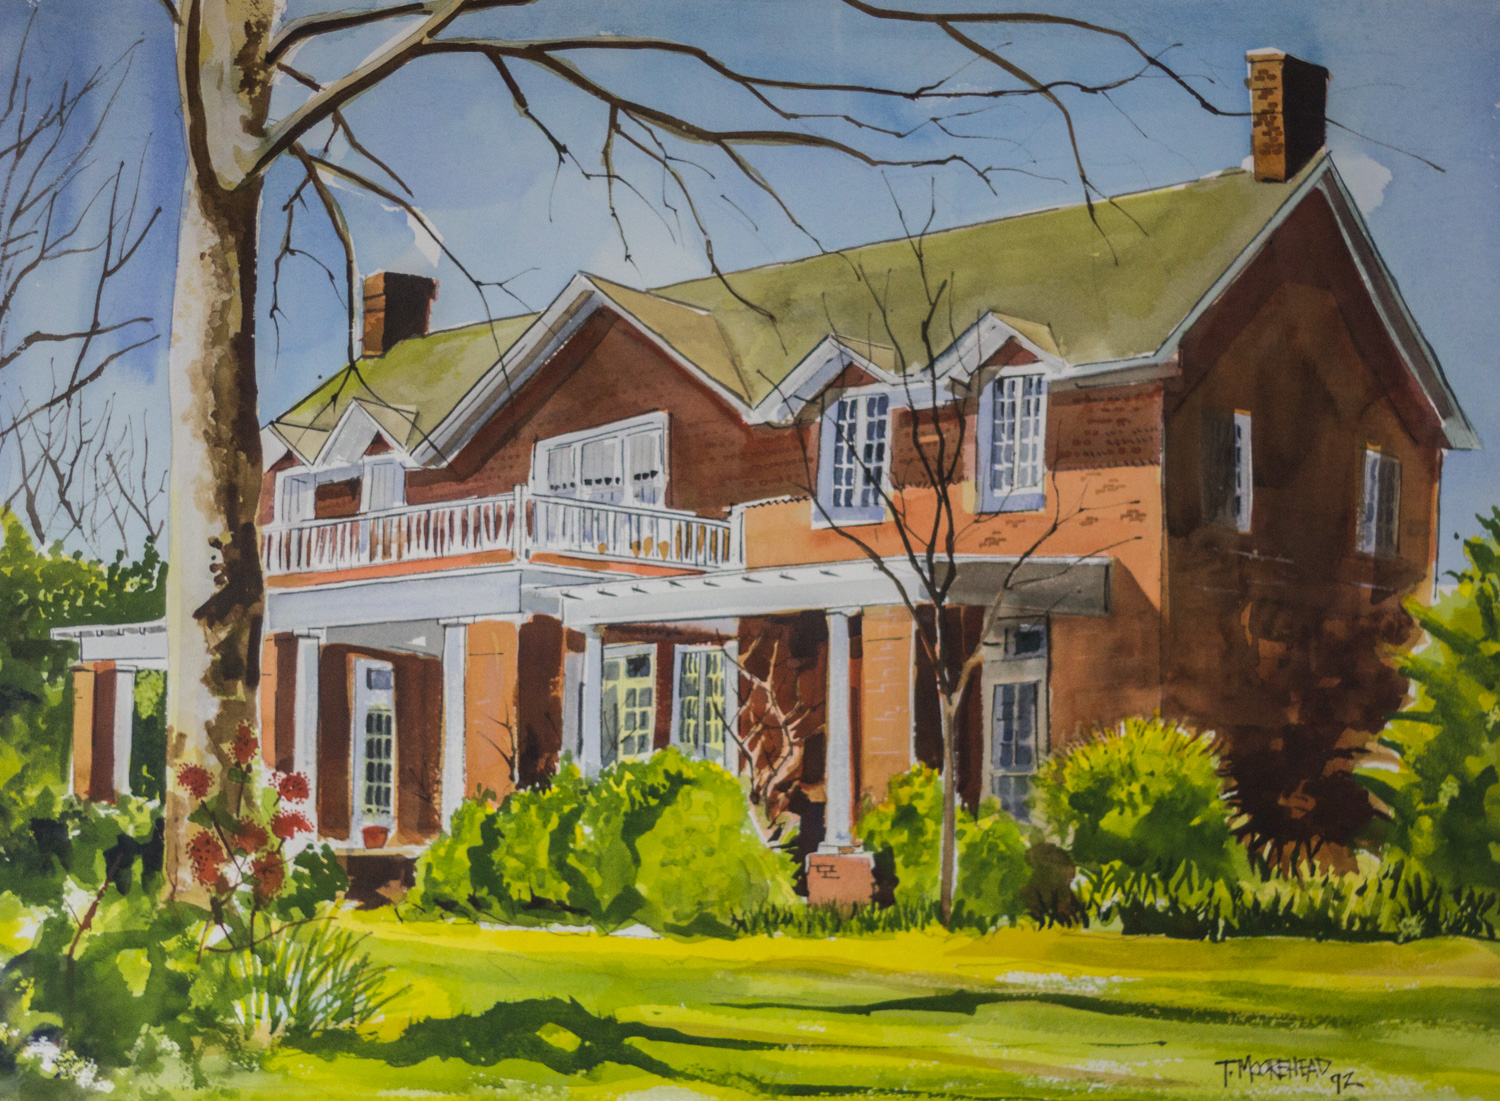 The Lucy Barnett House, by Tommy Moorehead, 1992, Watercolor on Paper, Purchased from the ARtist